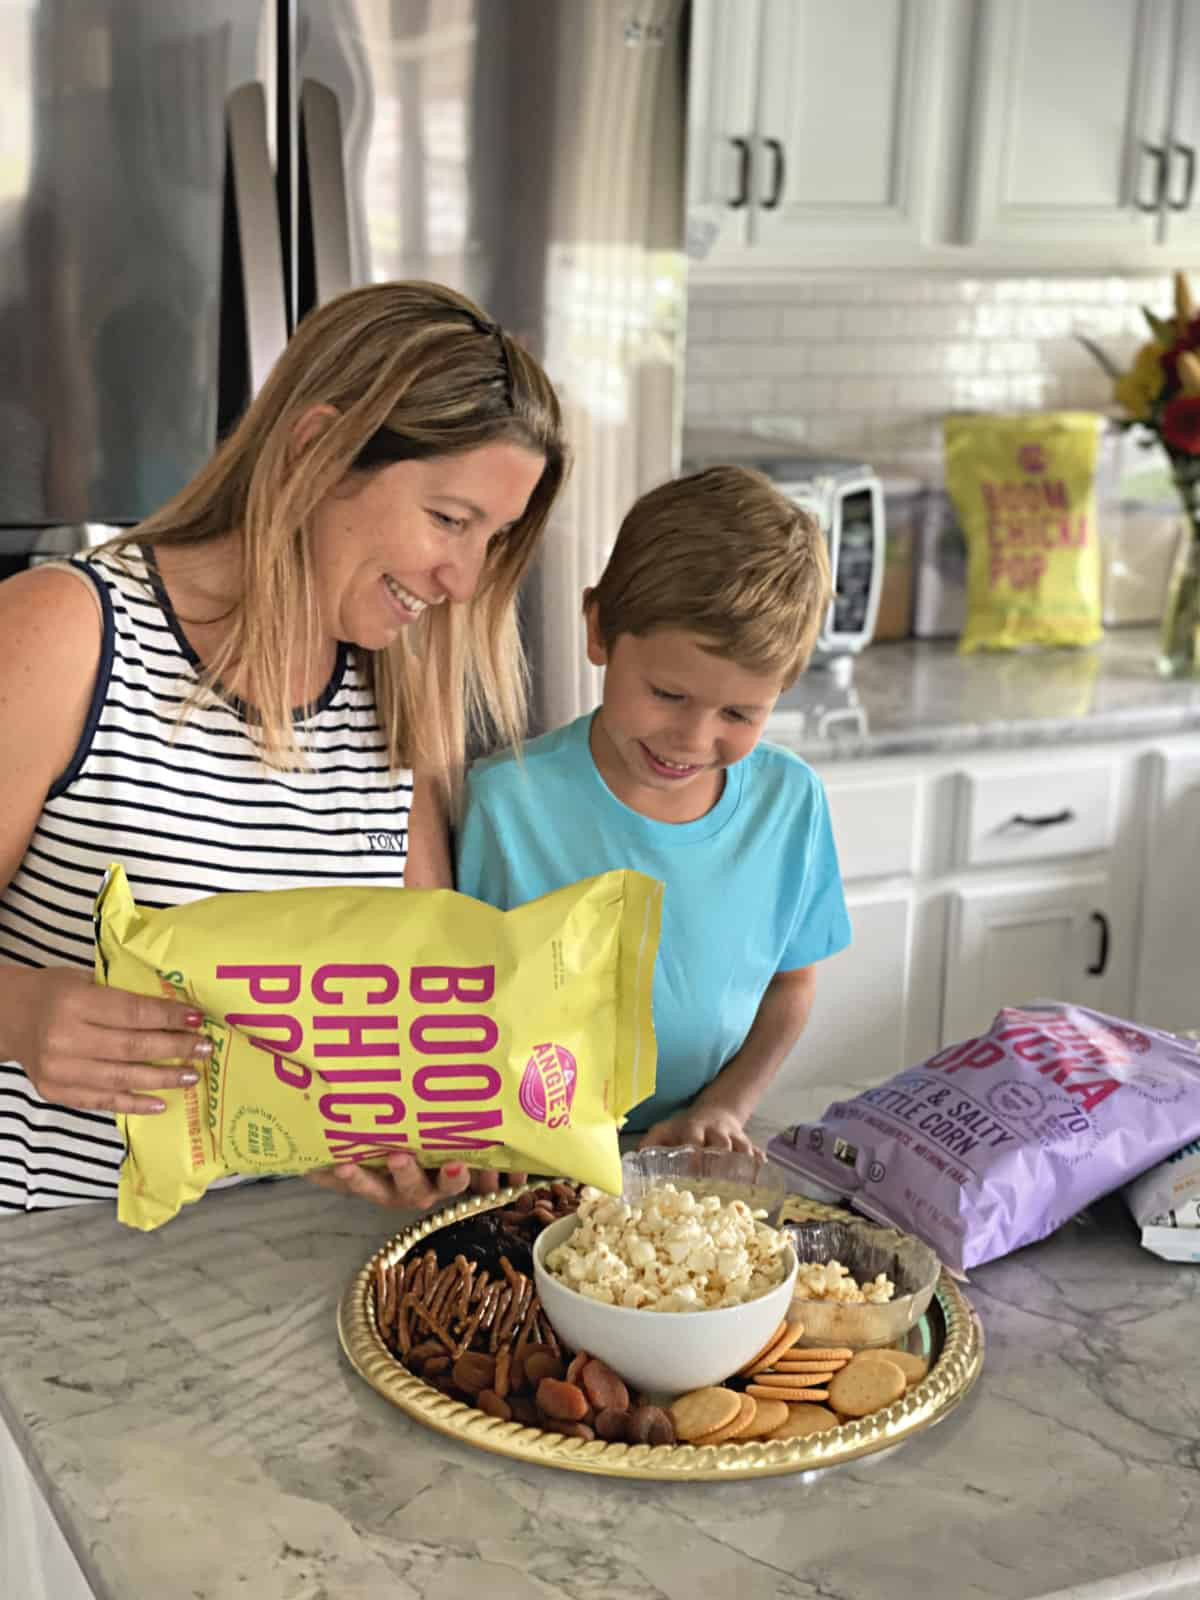 Mother and son pouring Angie's BOOMCHICKAPOP Sea Salt Popcorn into a bowl.